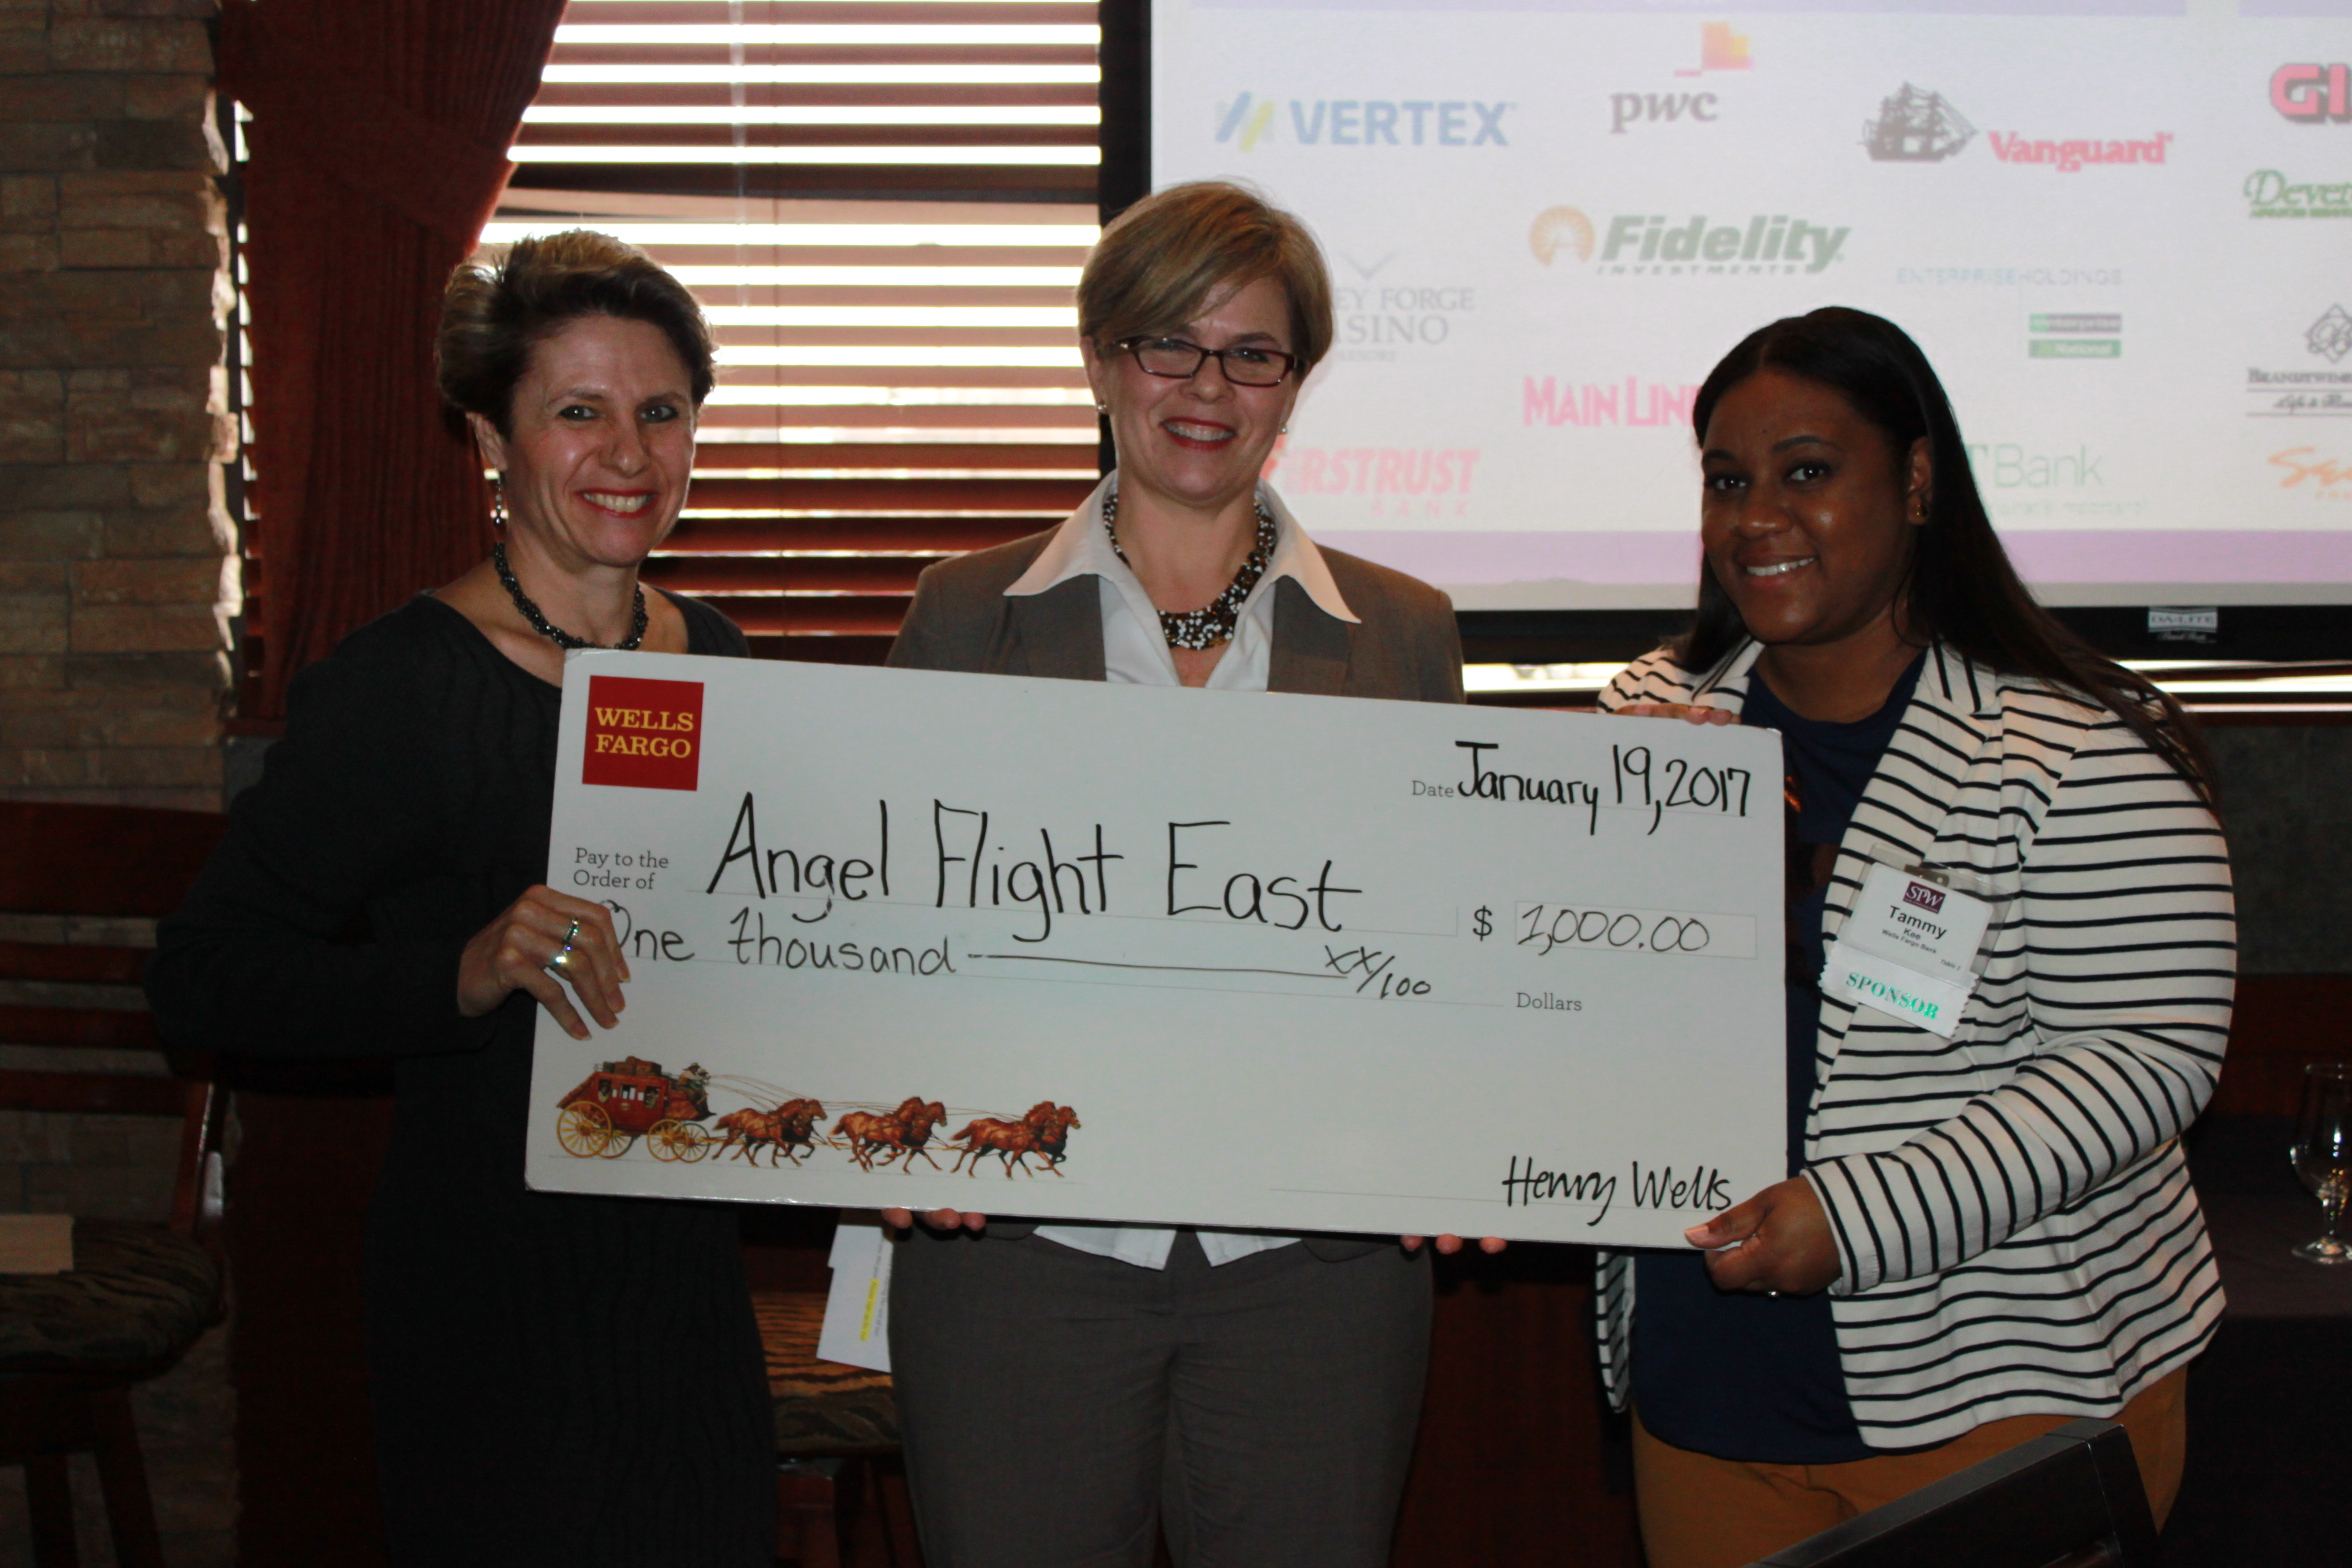 Featured Non-Profit Angel Flight East